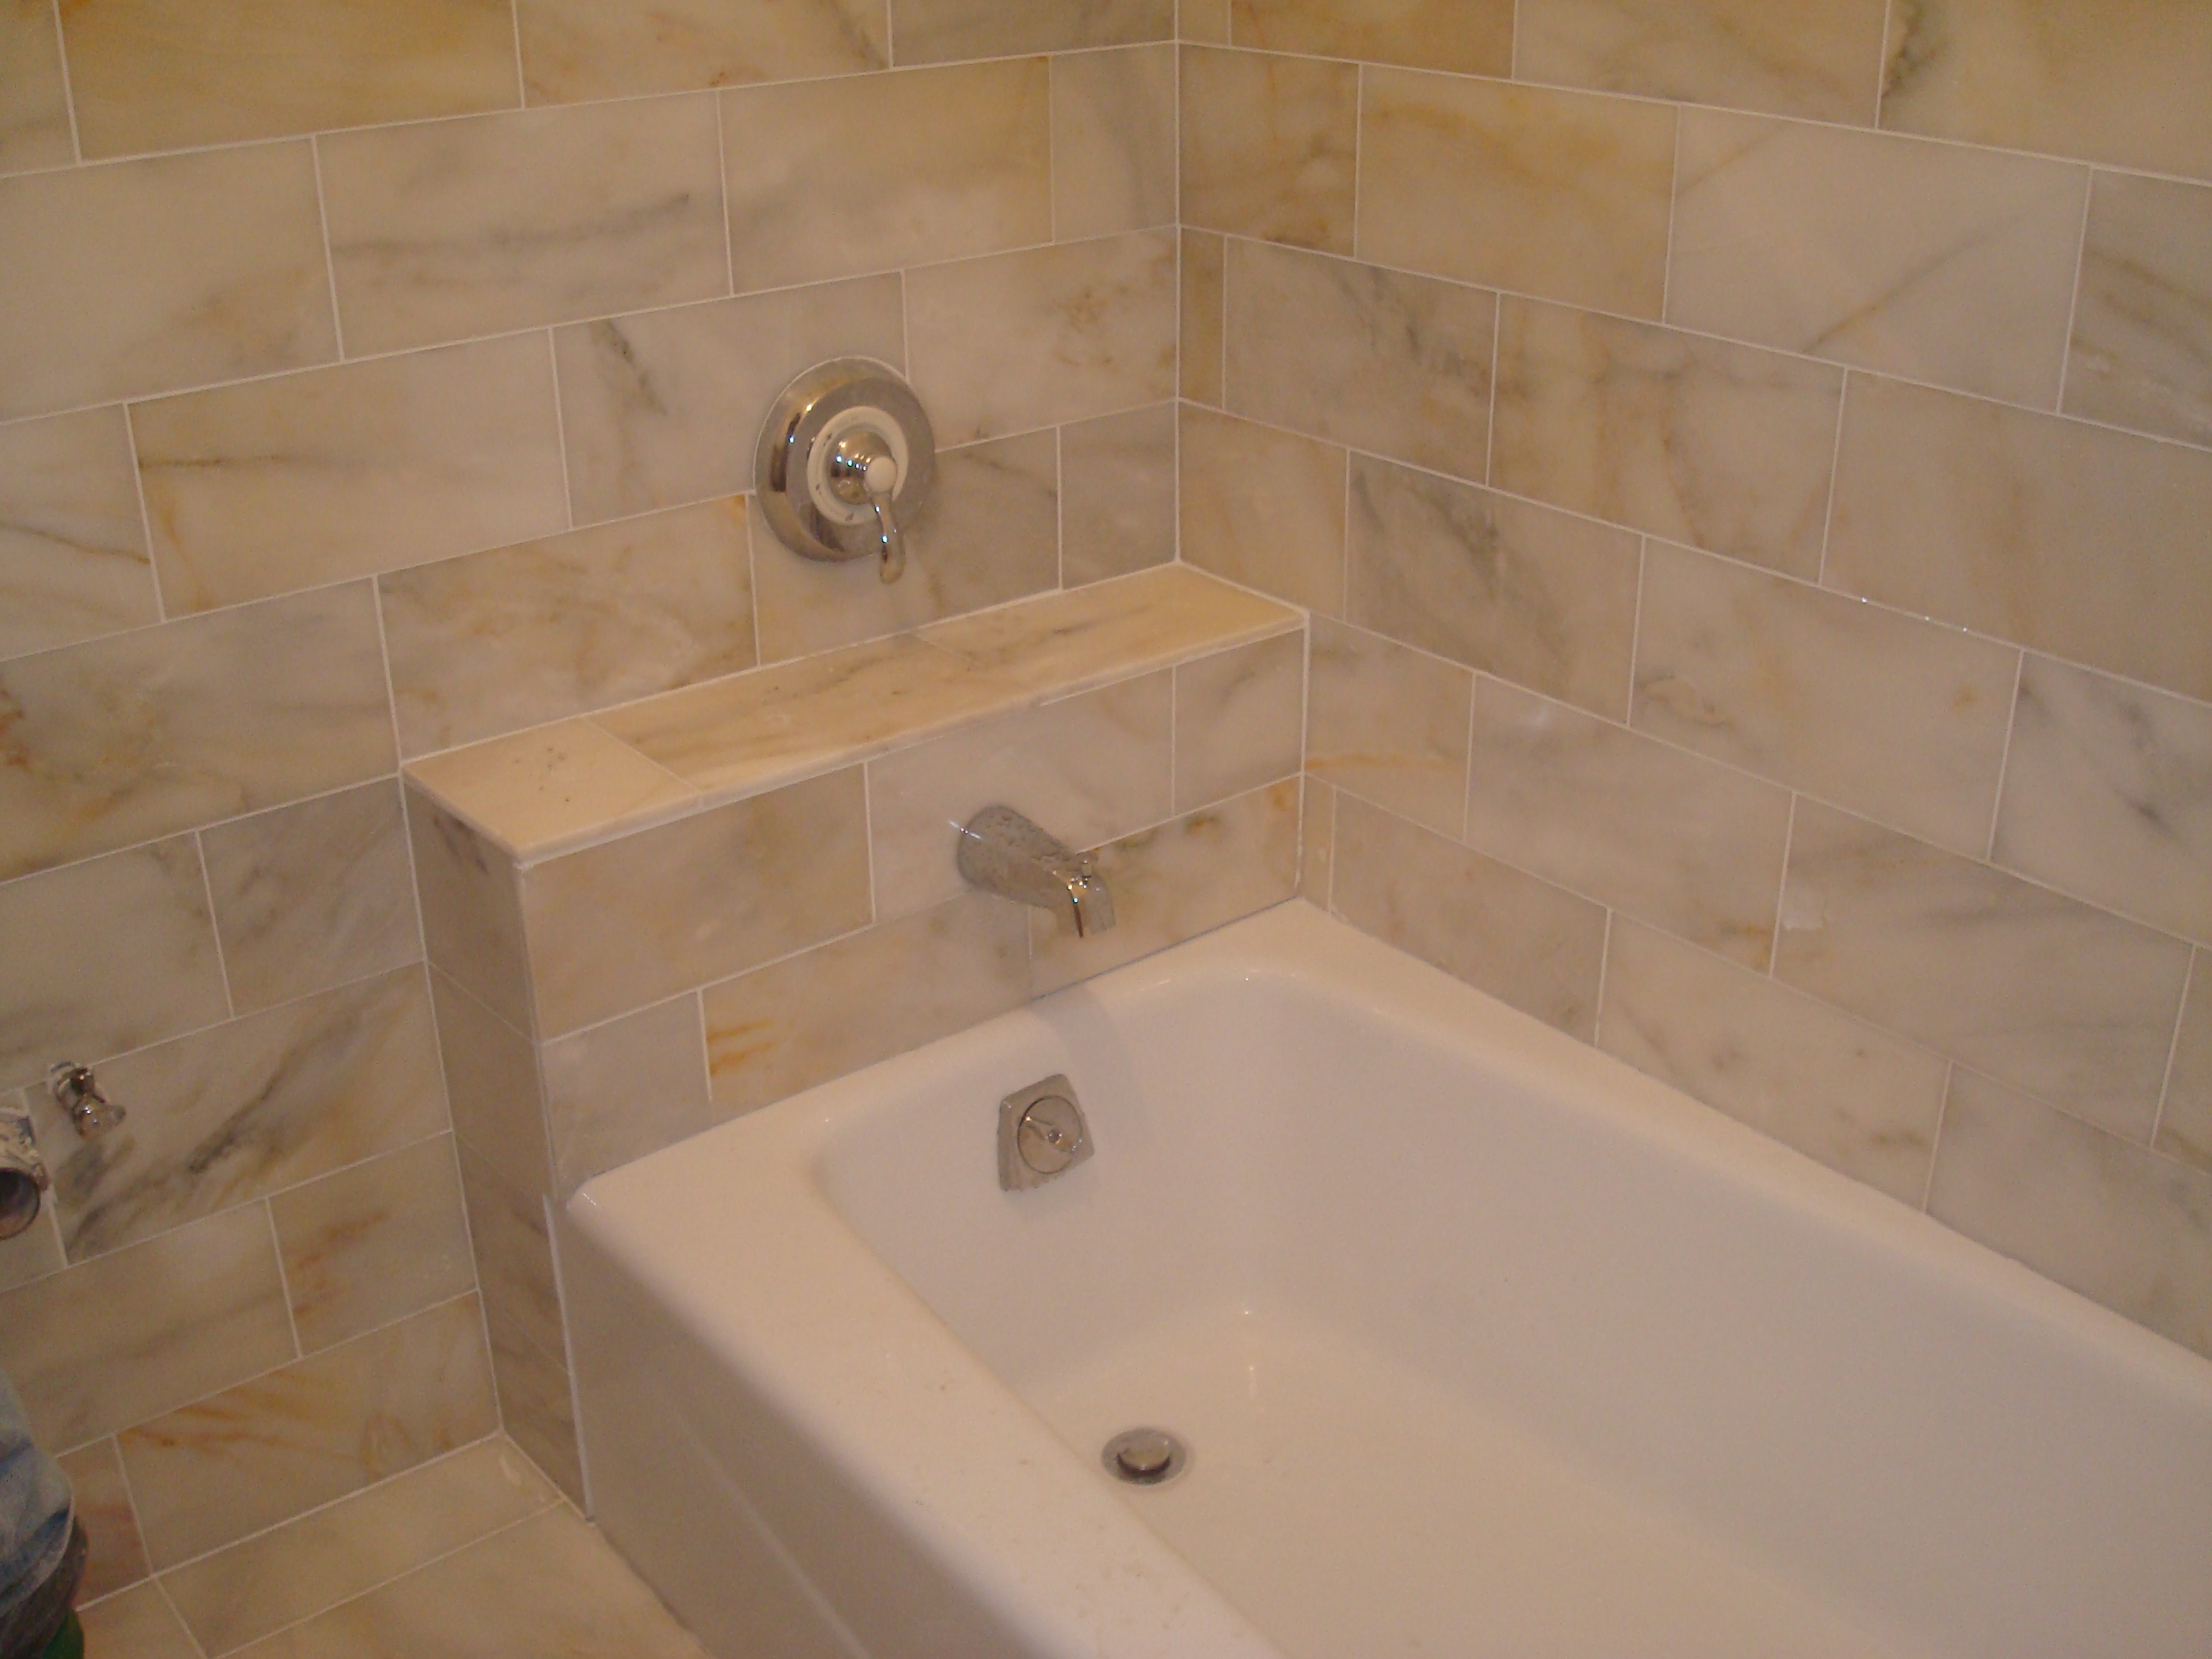 105-East-38-St-bathroom-128